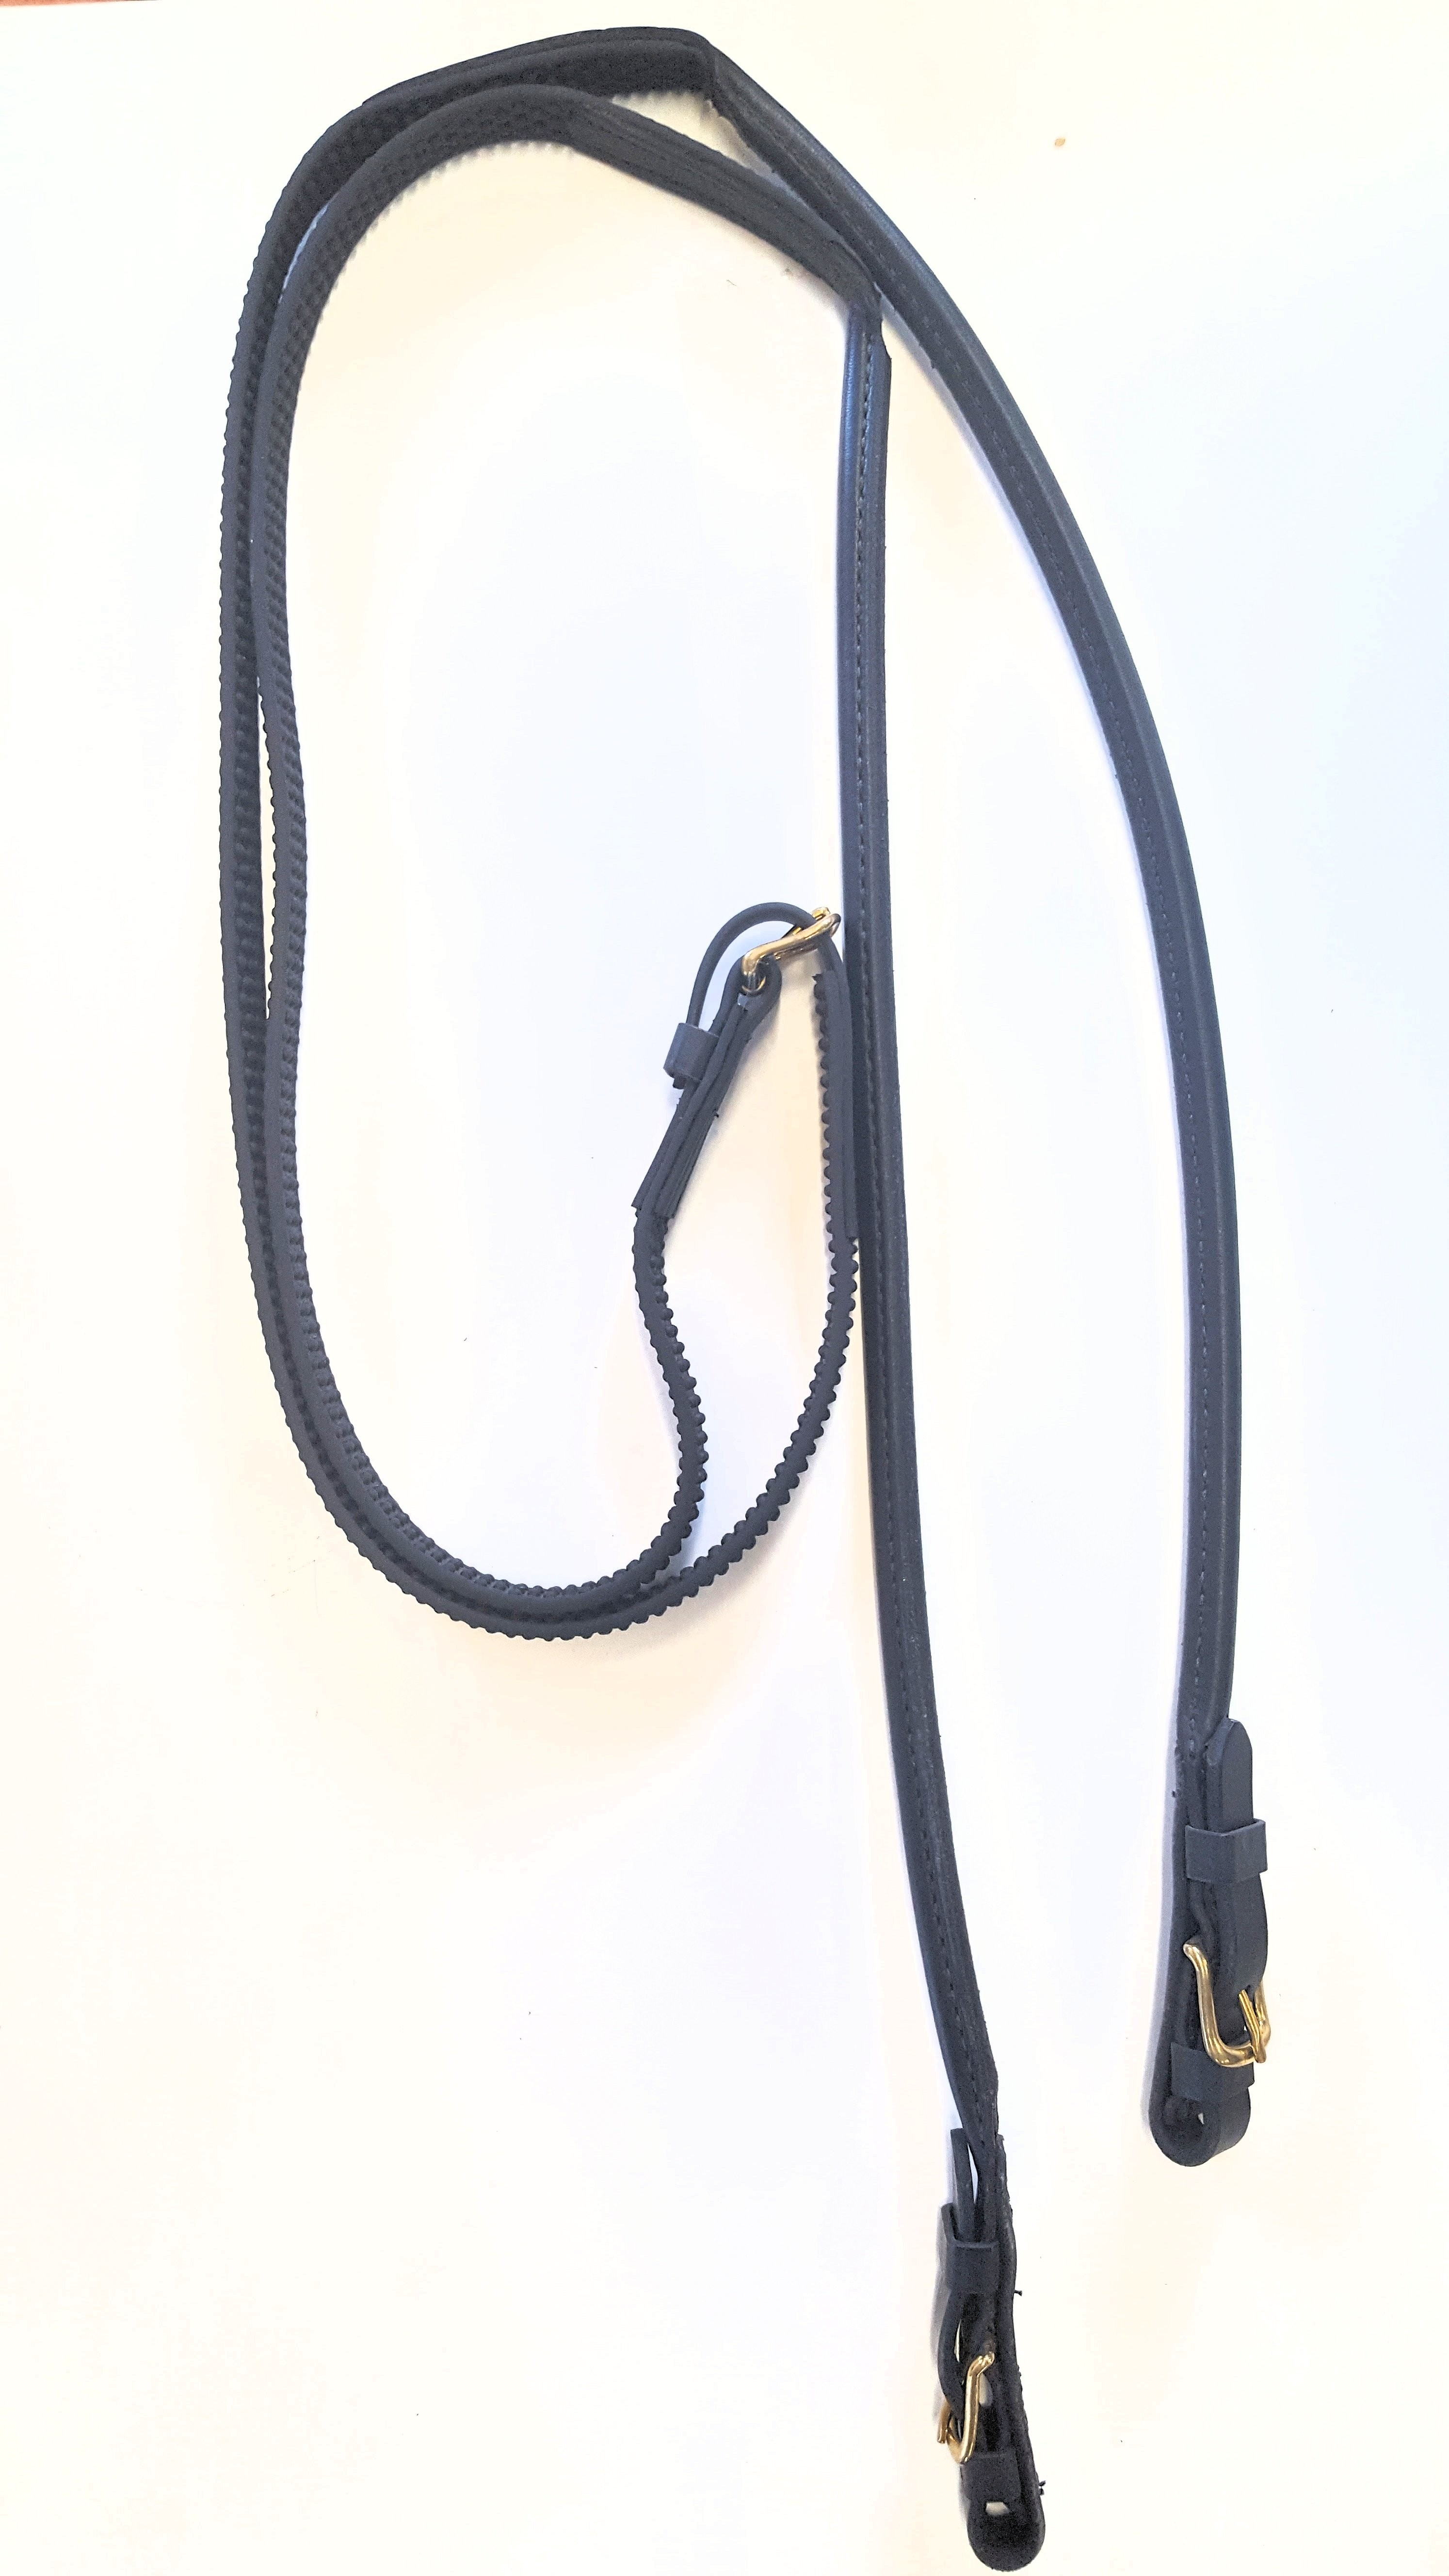 Super Grip English Reins with Rolled Leather at Bit End.